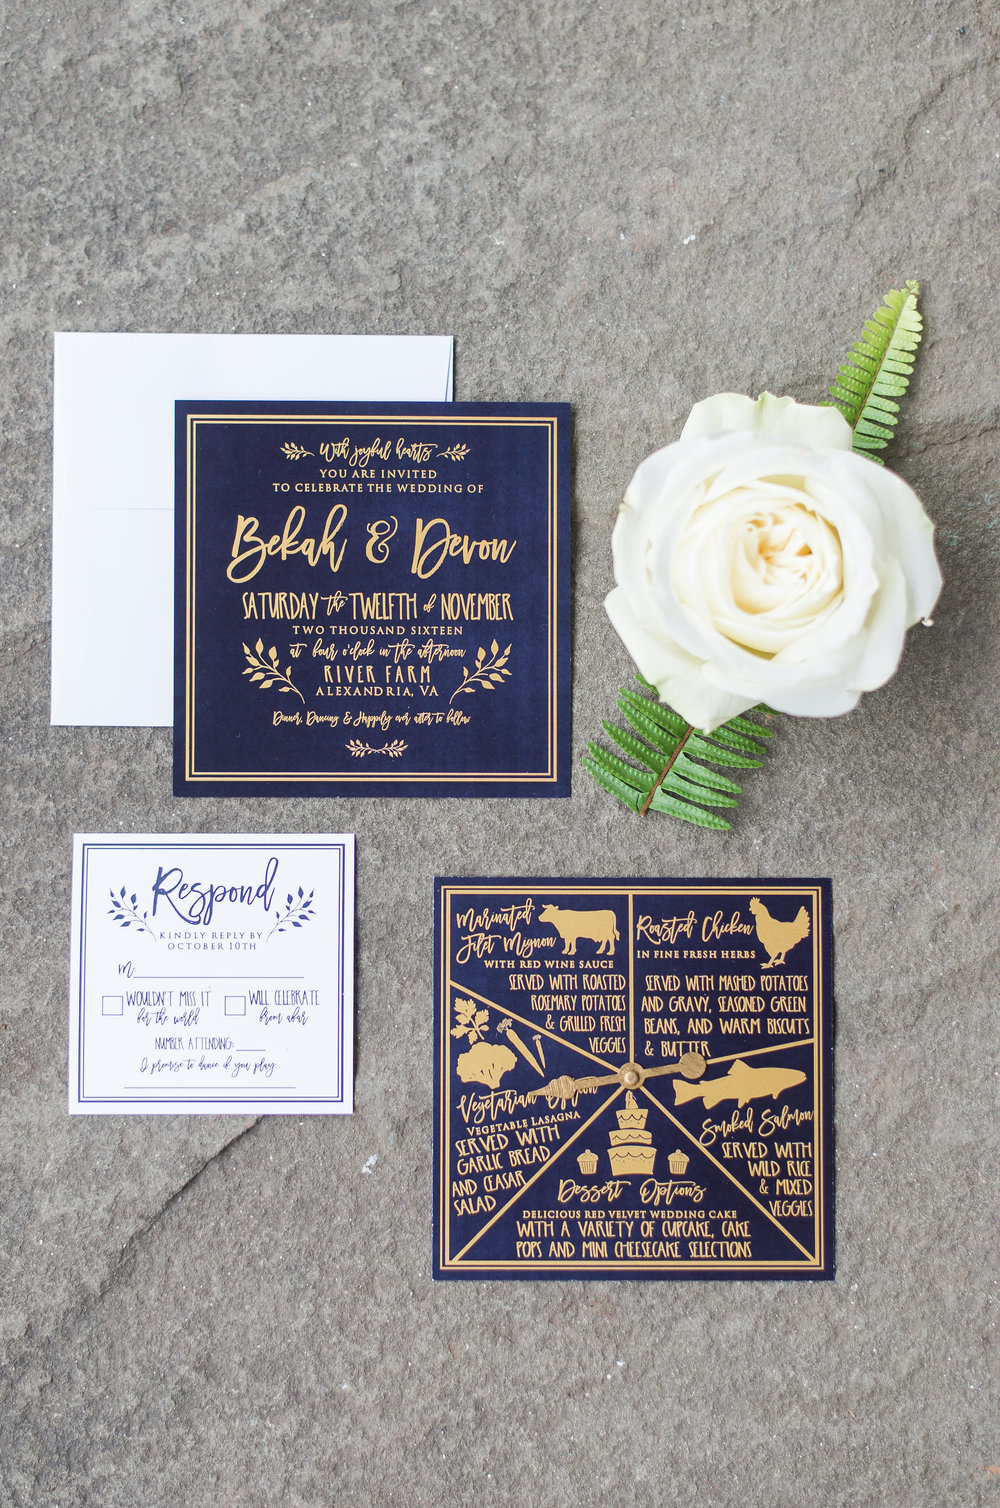 The Complete Wedding Invitation Checklist | Printing Fly